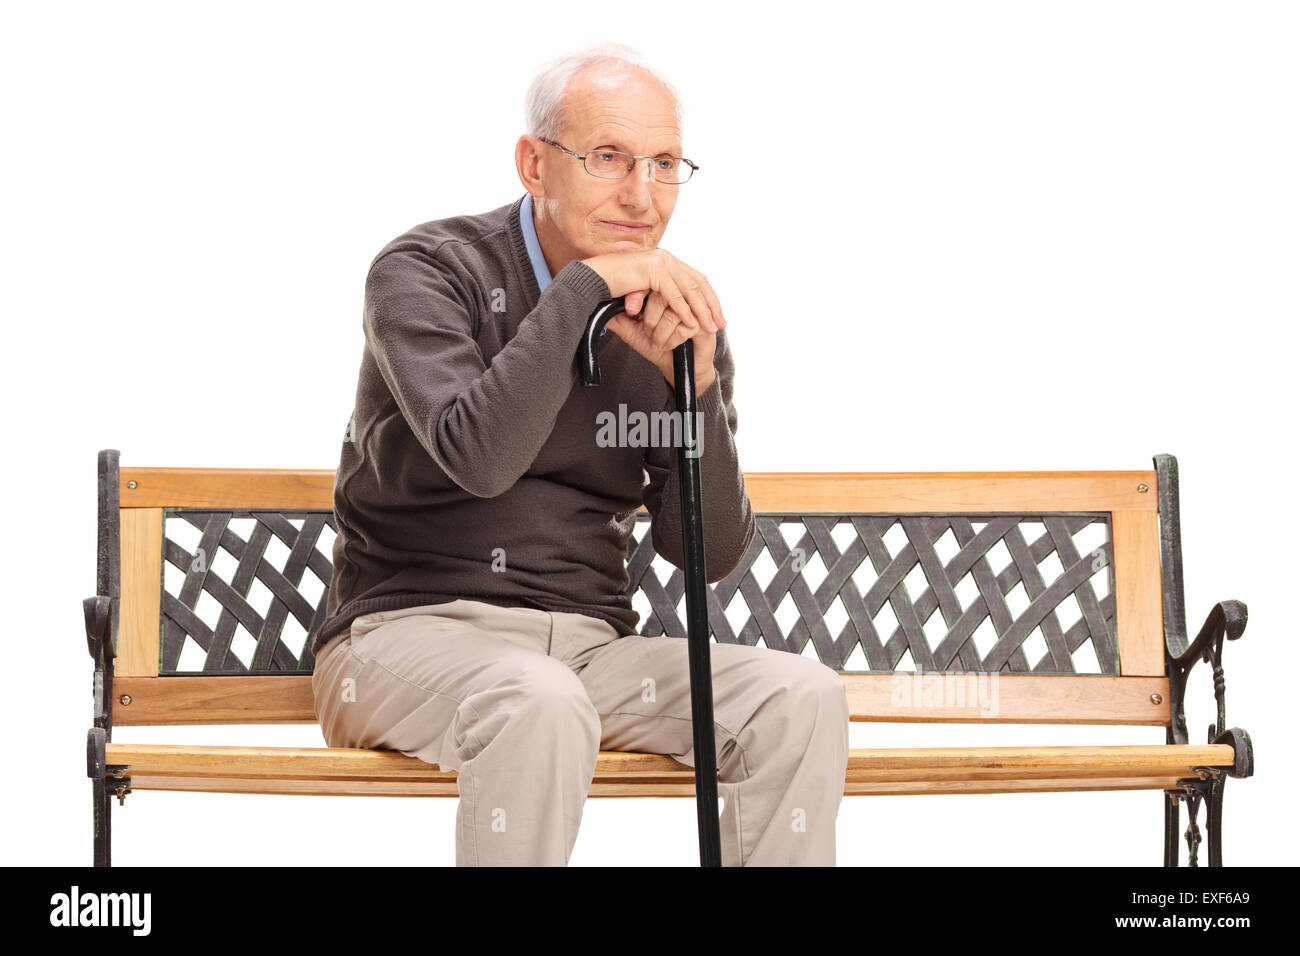 Studio shot of a pensive senior gentleman sitting on a bench and thinking isolated on white background - Stock Image